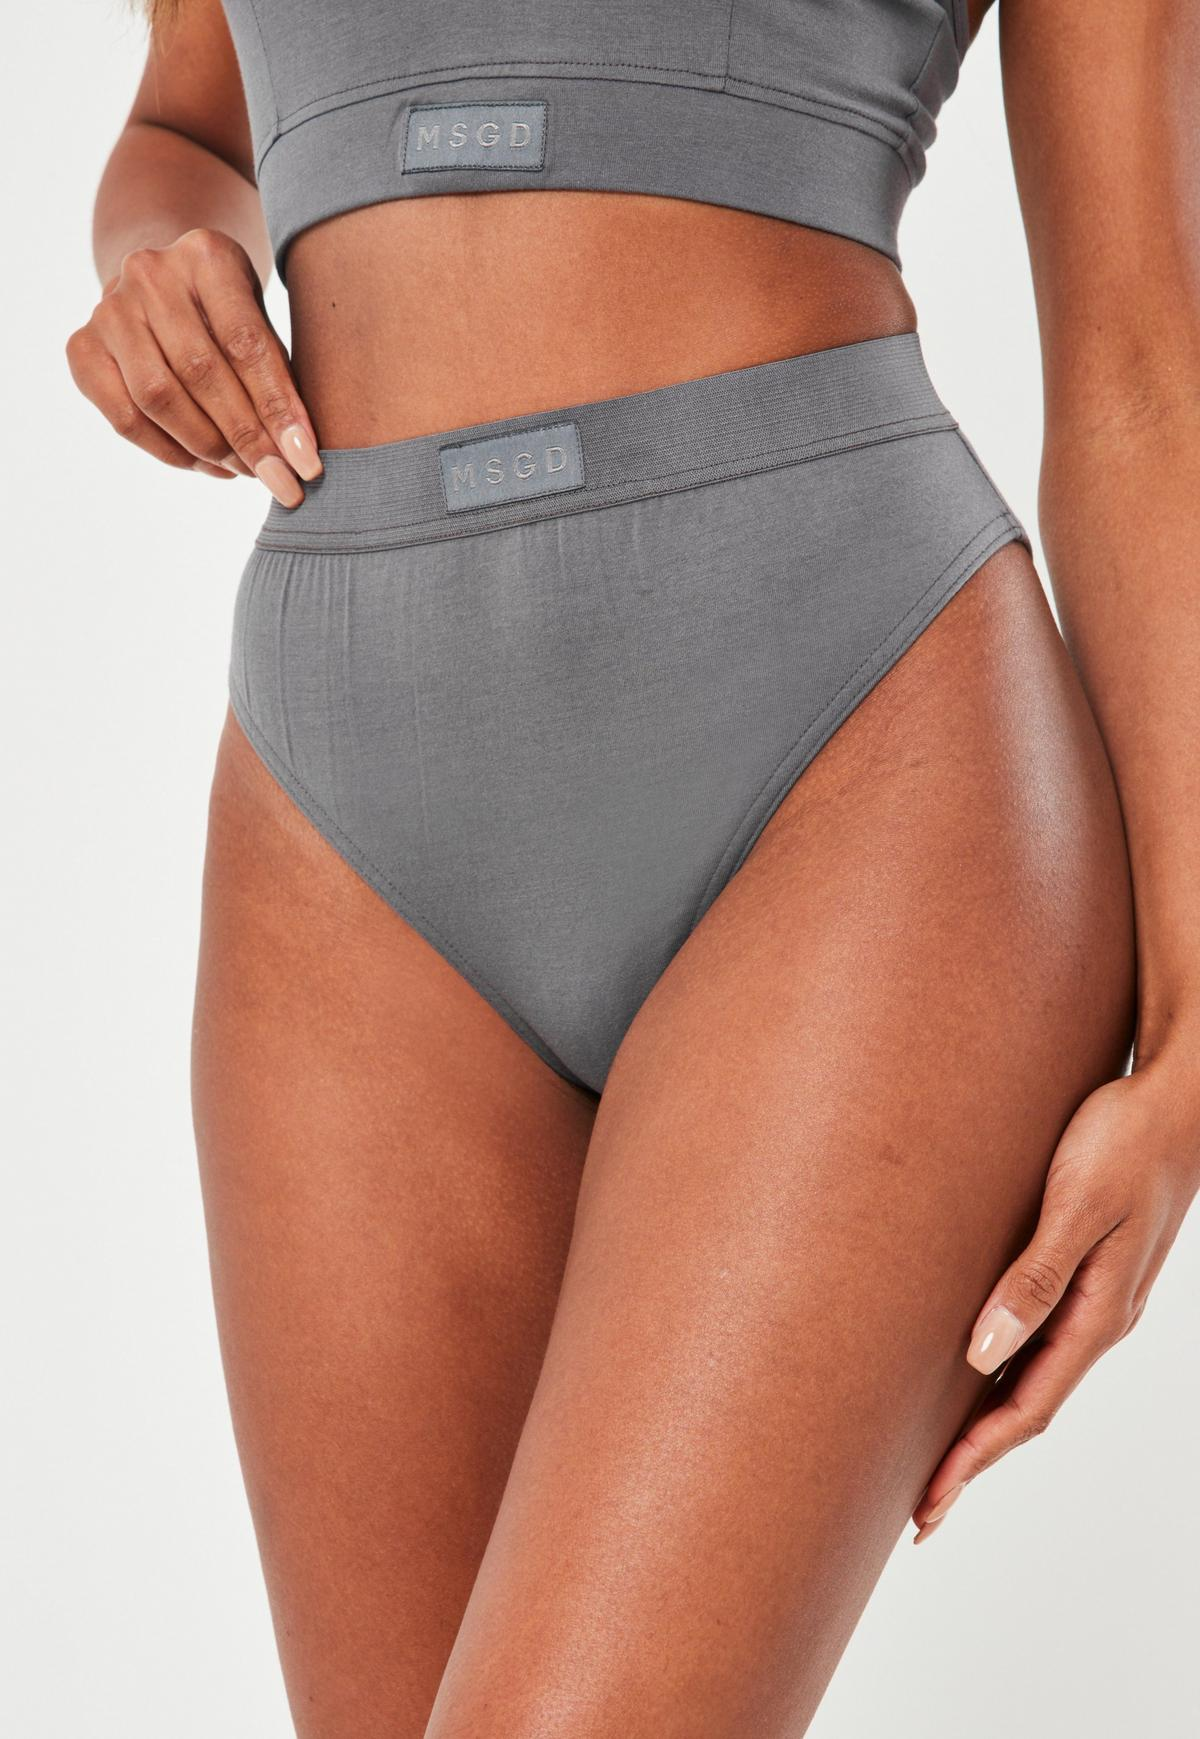 Grey Msgd High Waisted High Leg Knickers Missguided